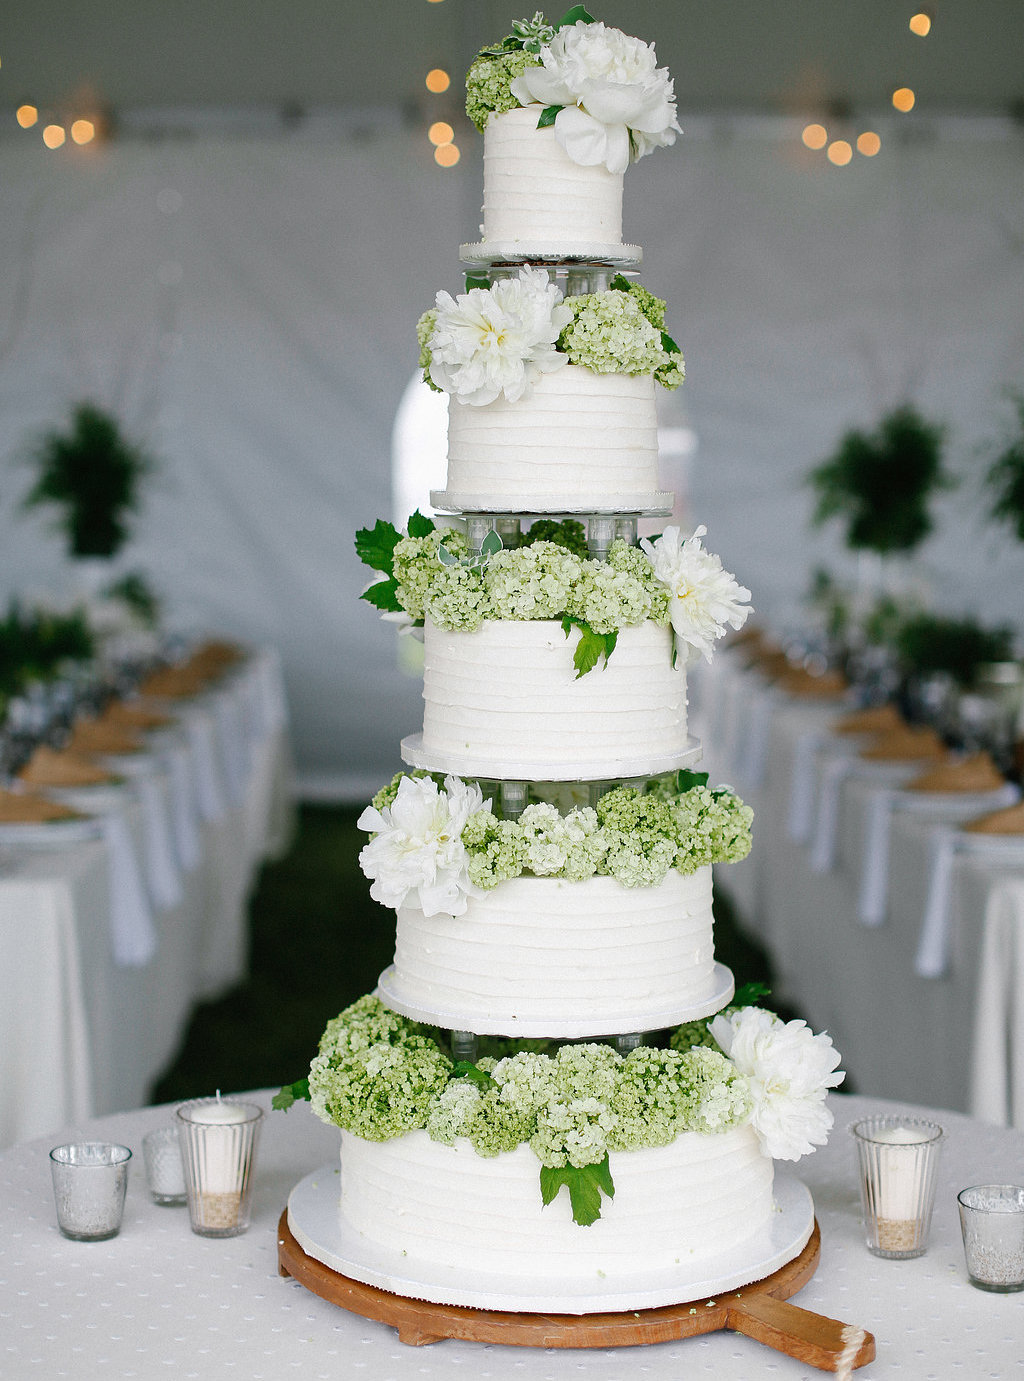 Wedding Cake Ideas Nontraditional Wedding Cake Decorations And